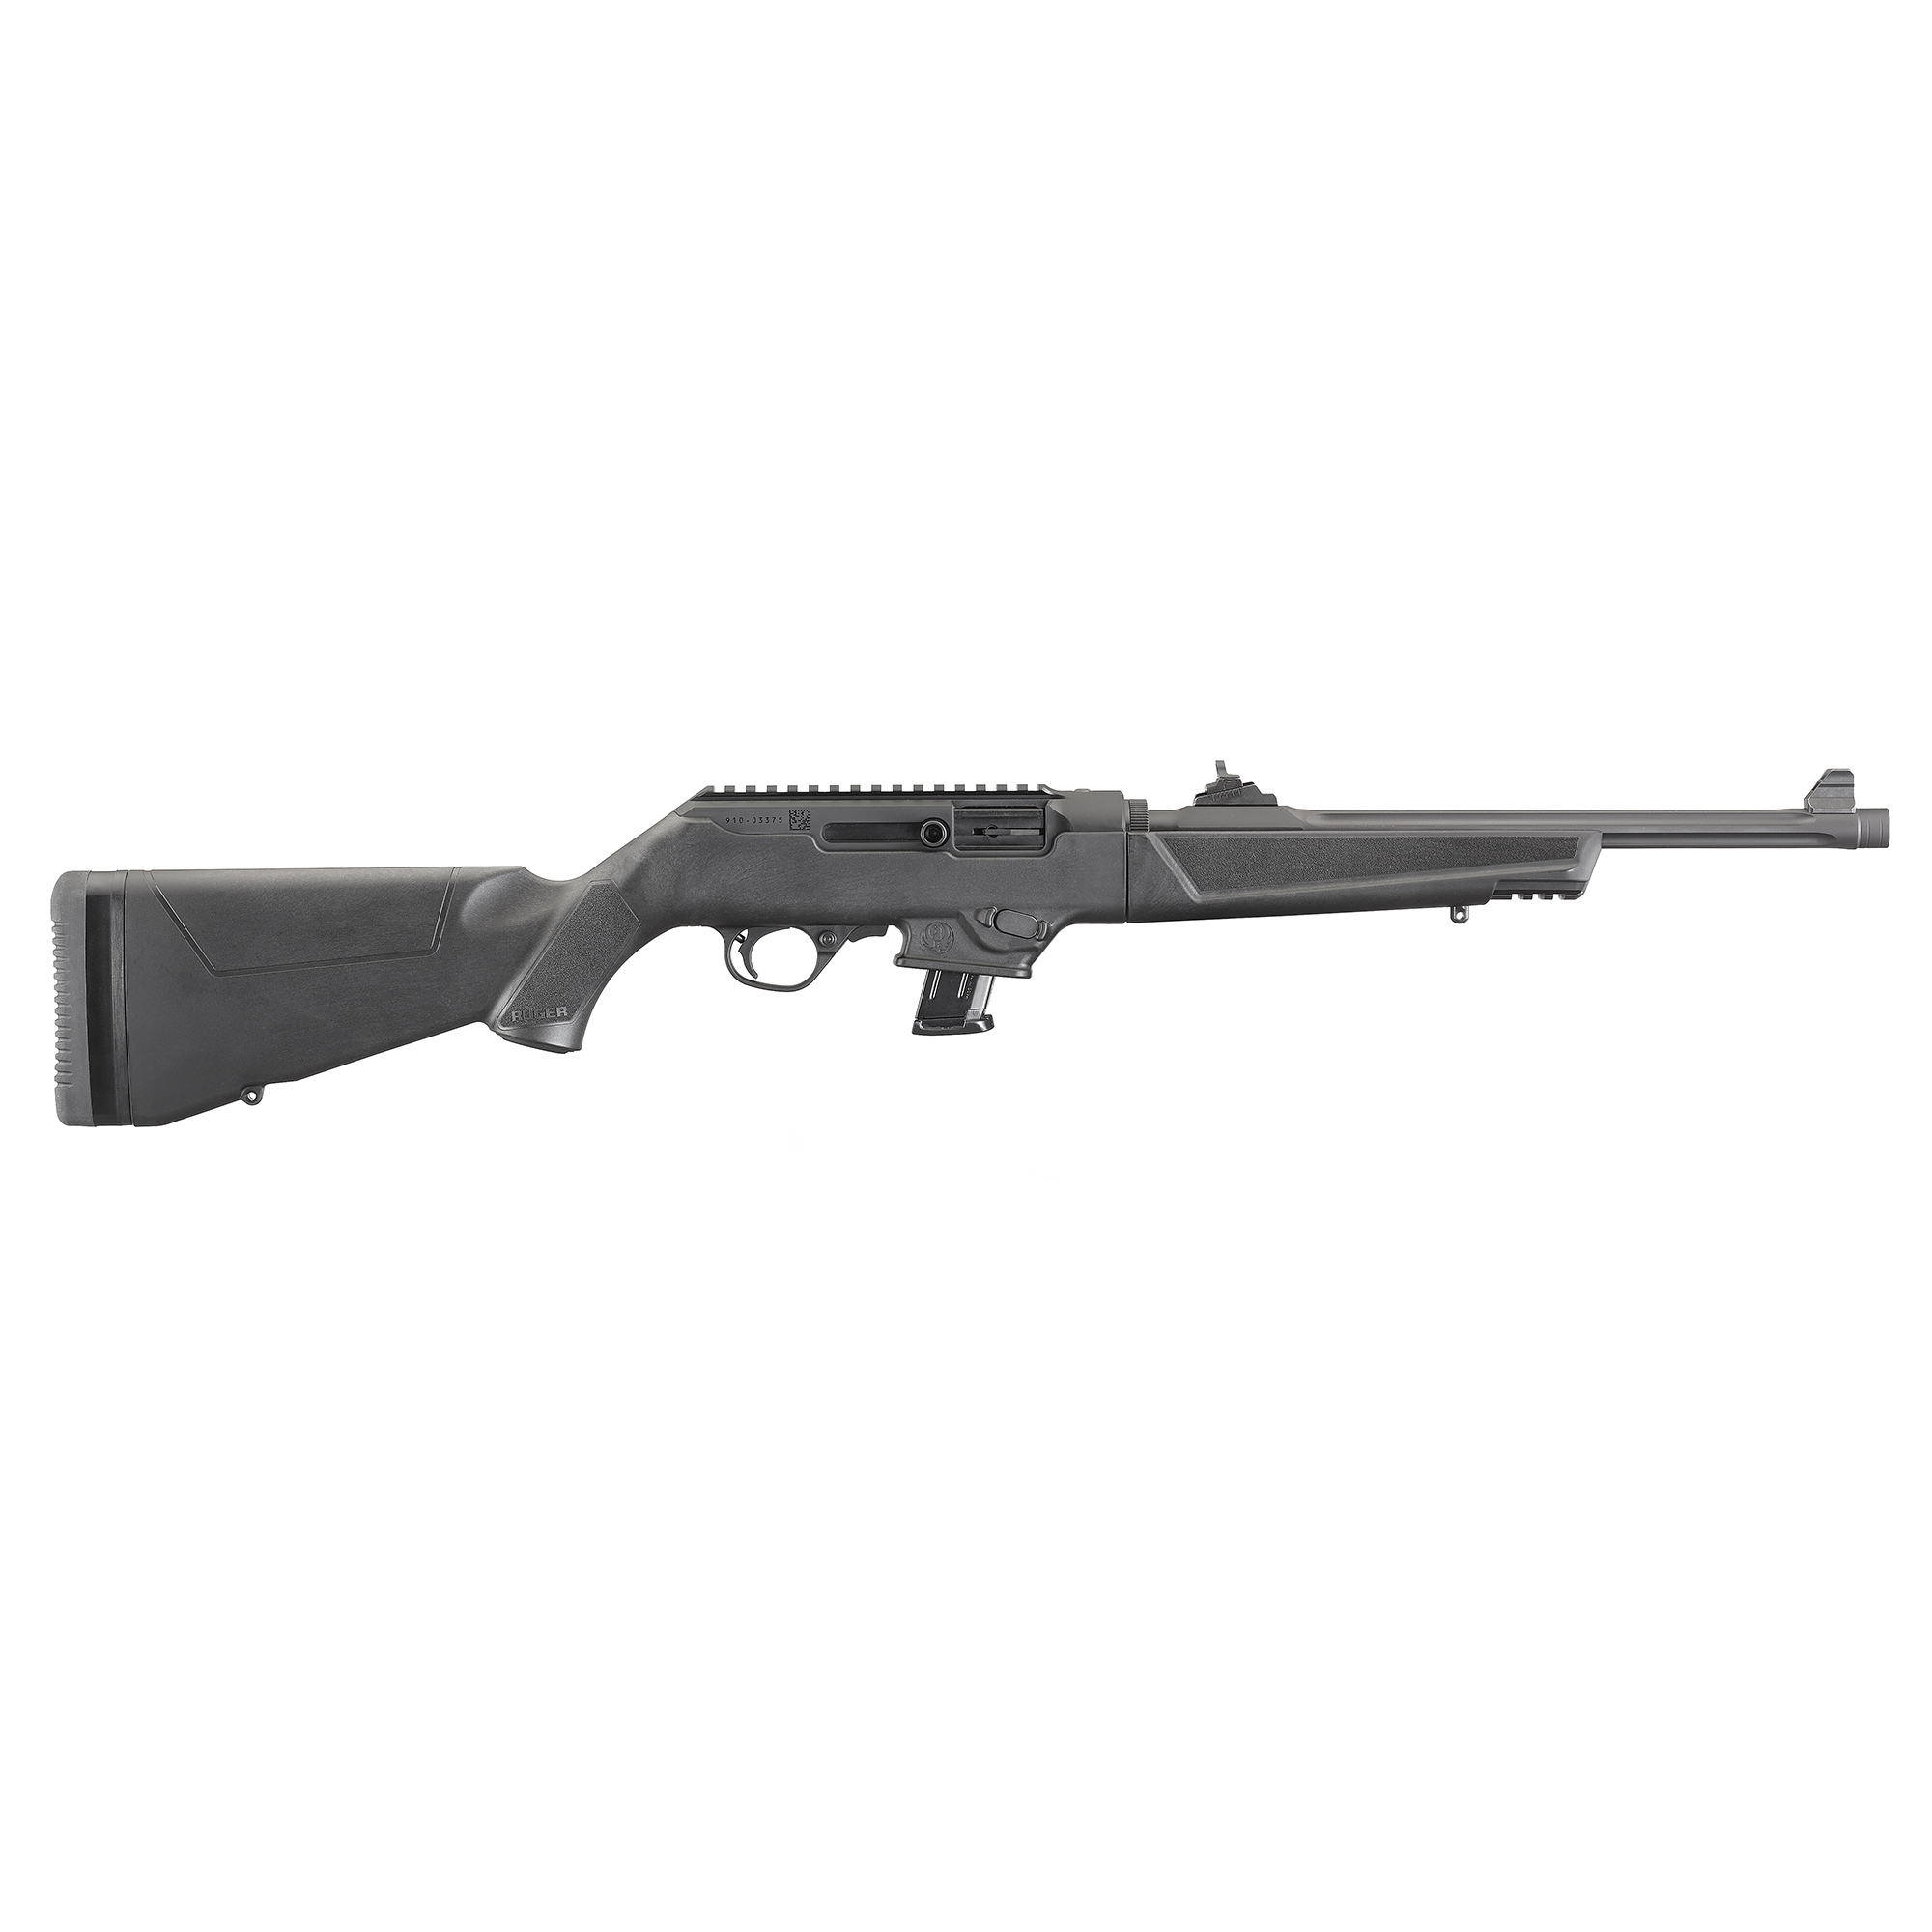 Ruger PC Carbine Centerfire Rifle, 10 Rd.